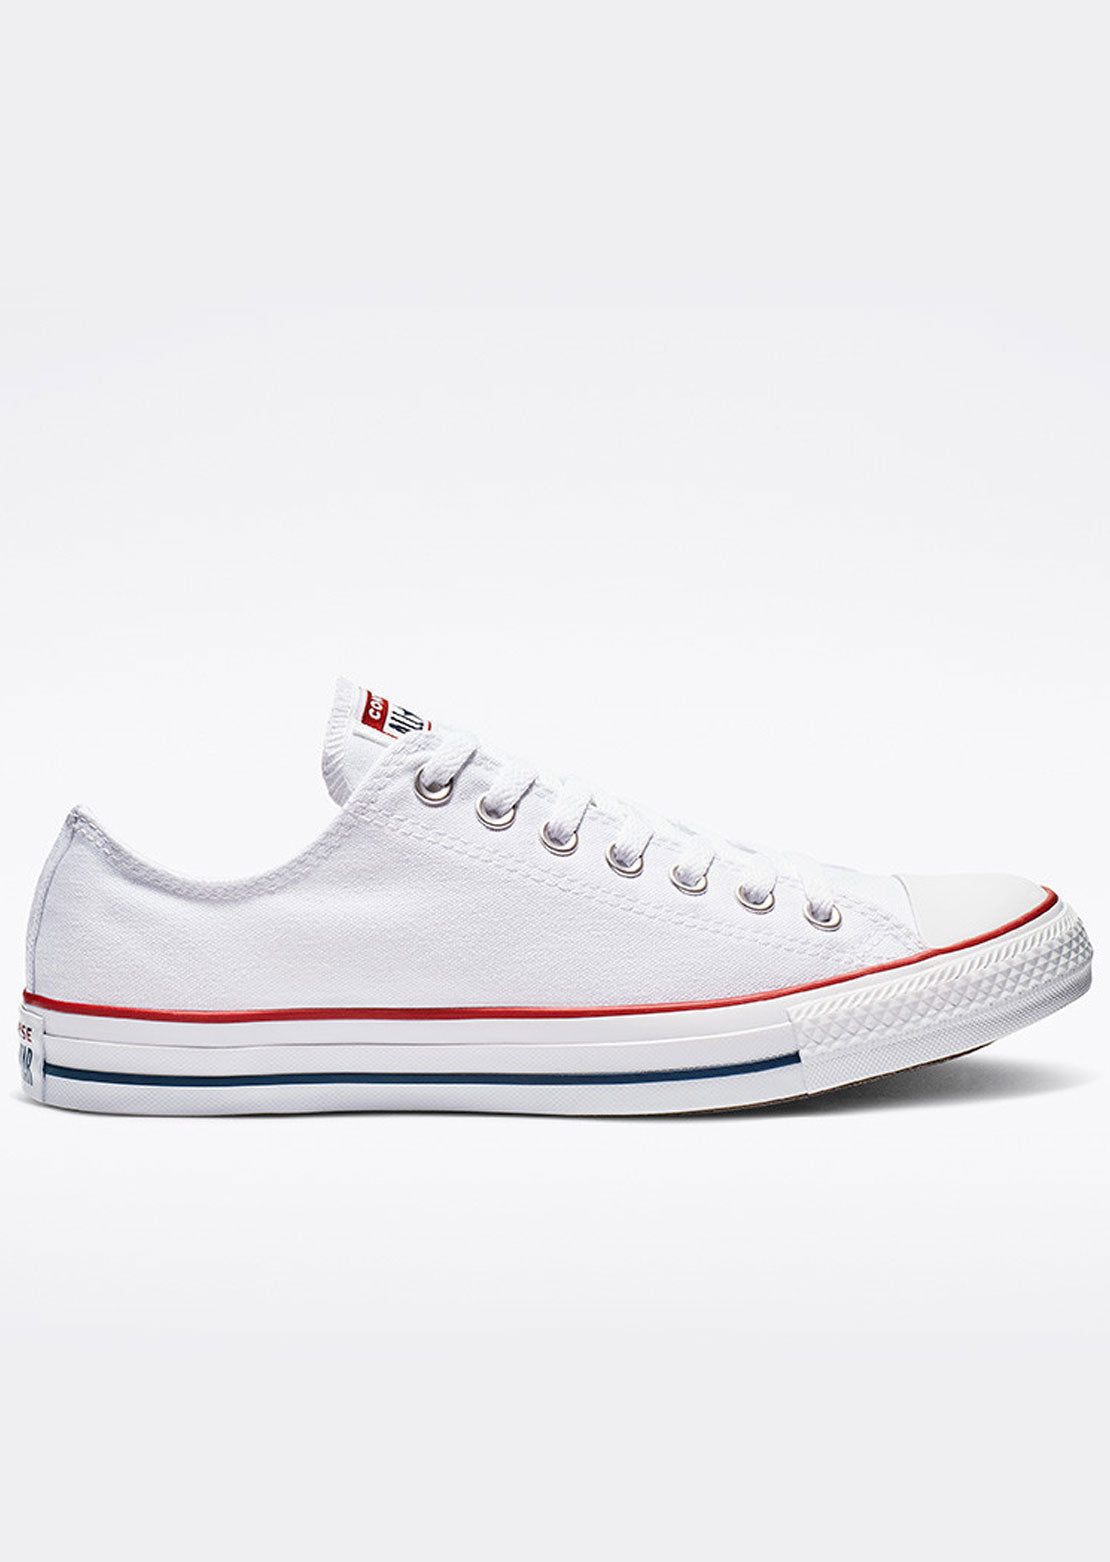 Converse Unisex Chuck Taylor All Star Low Top Shoes Optical White